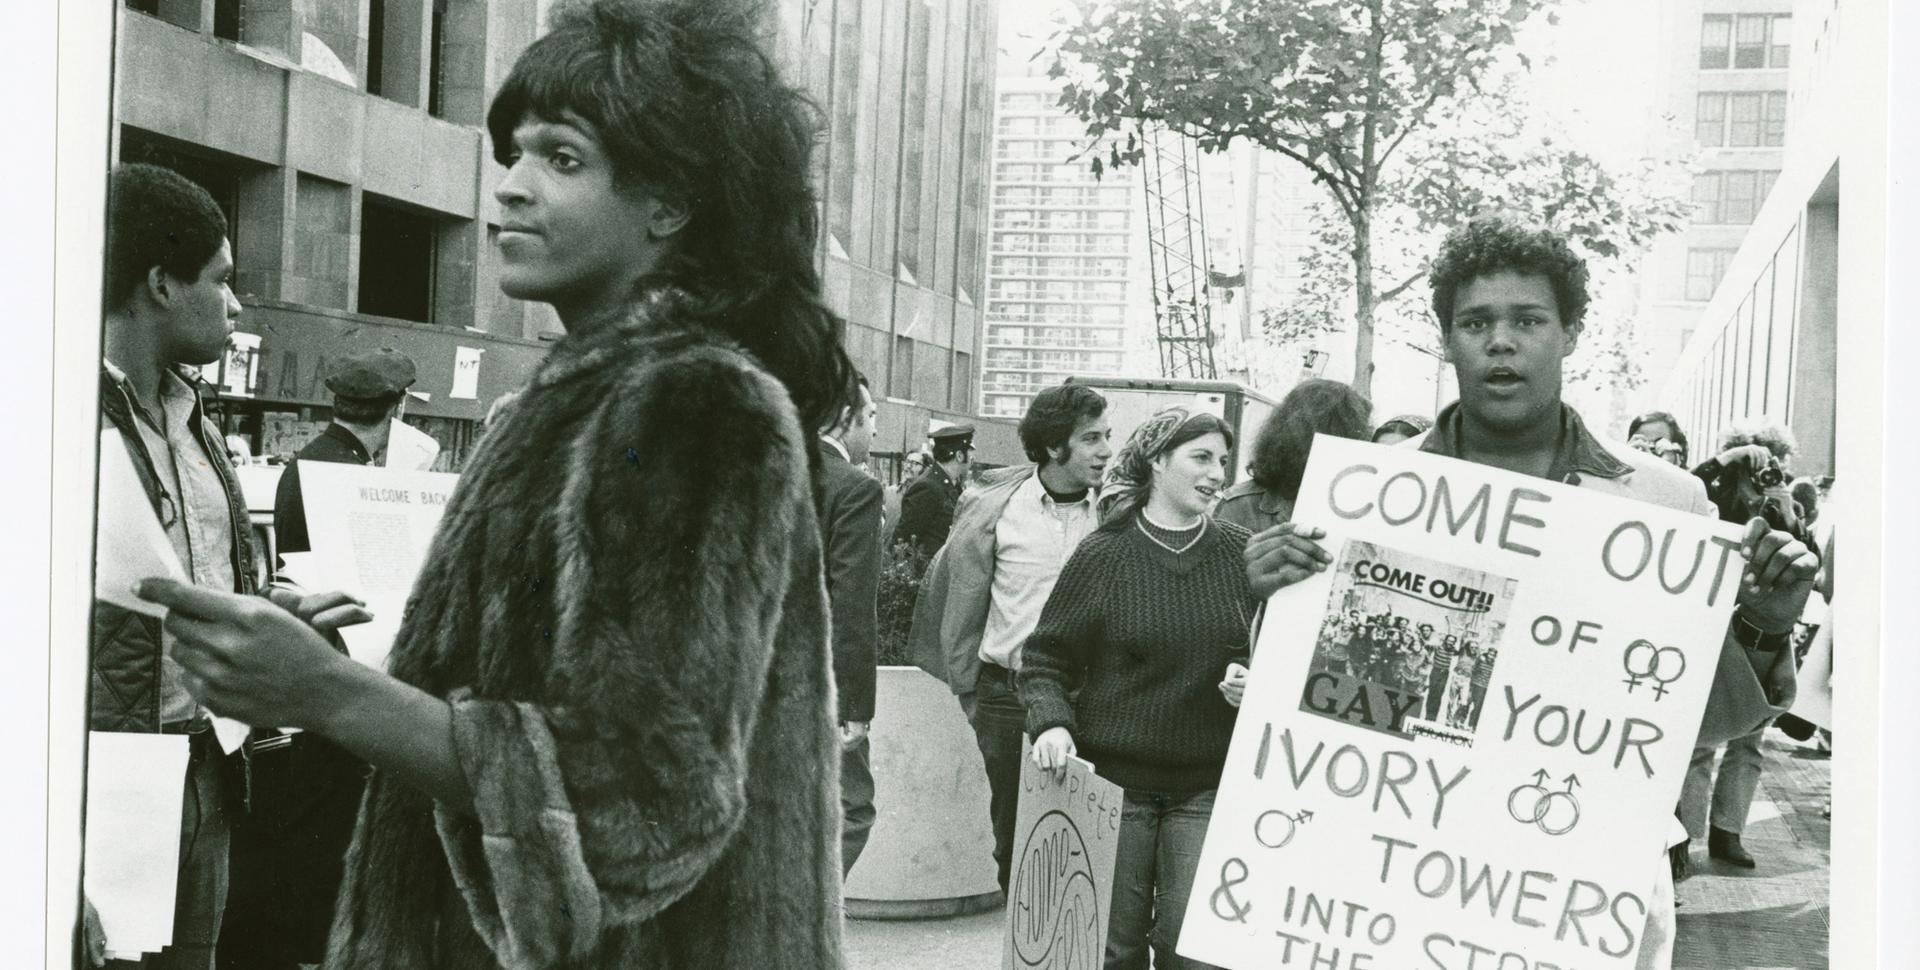 Untitled, around 1970. (Marsha P. Johnson hands out flyers in support of gay students at NYU) © Diana Davies / New York Public Library / Art Resource, NY